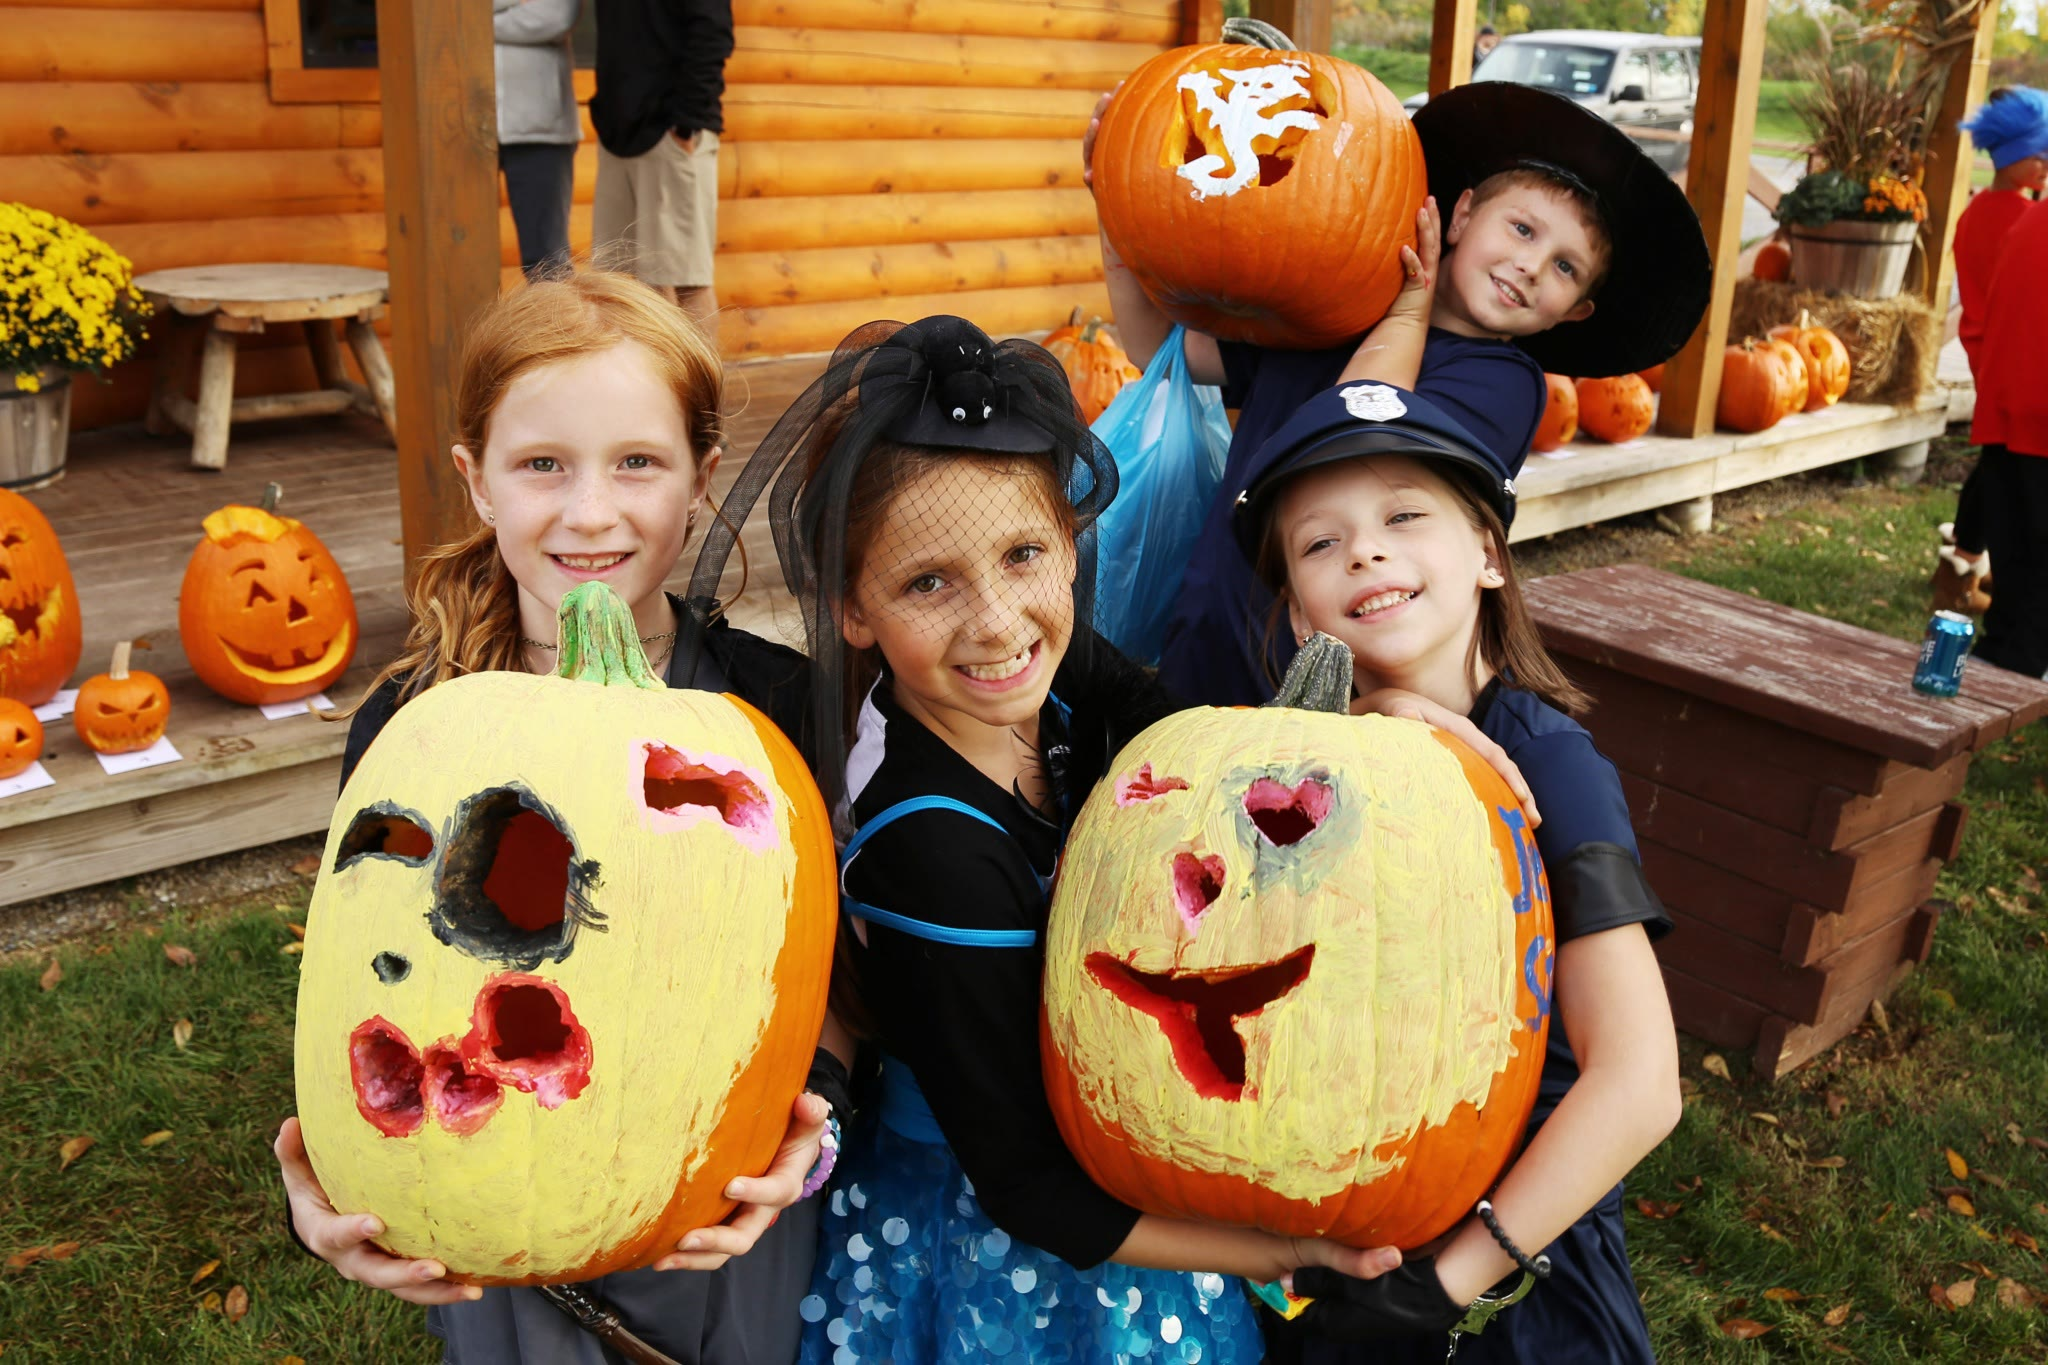 kids with decorated and carved pumpkins